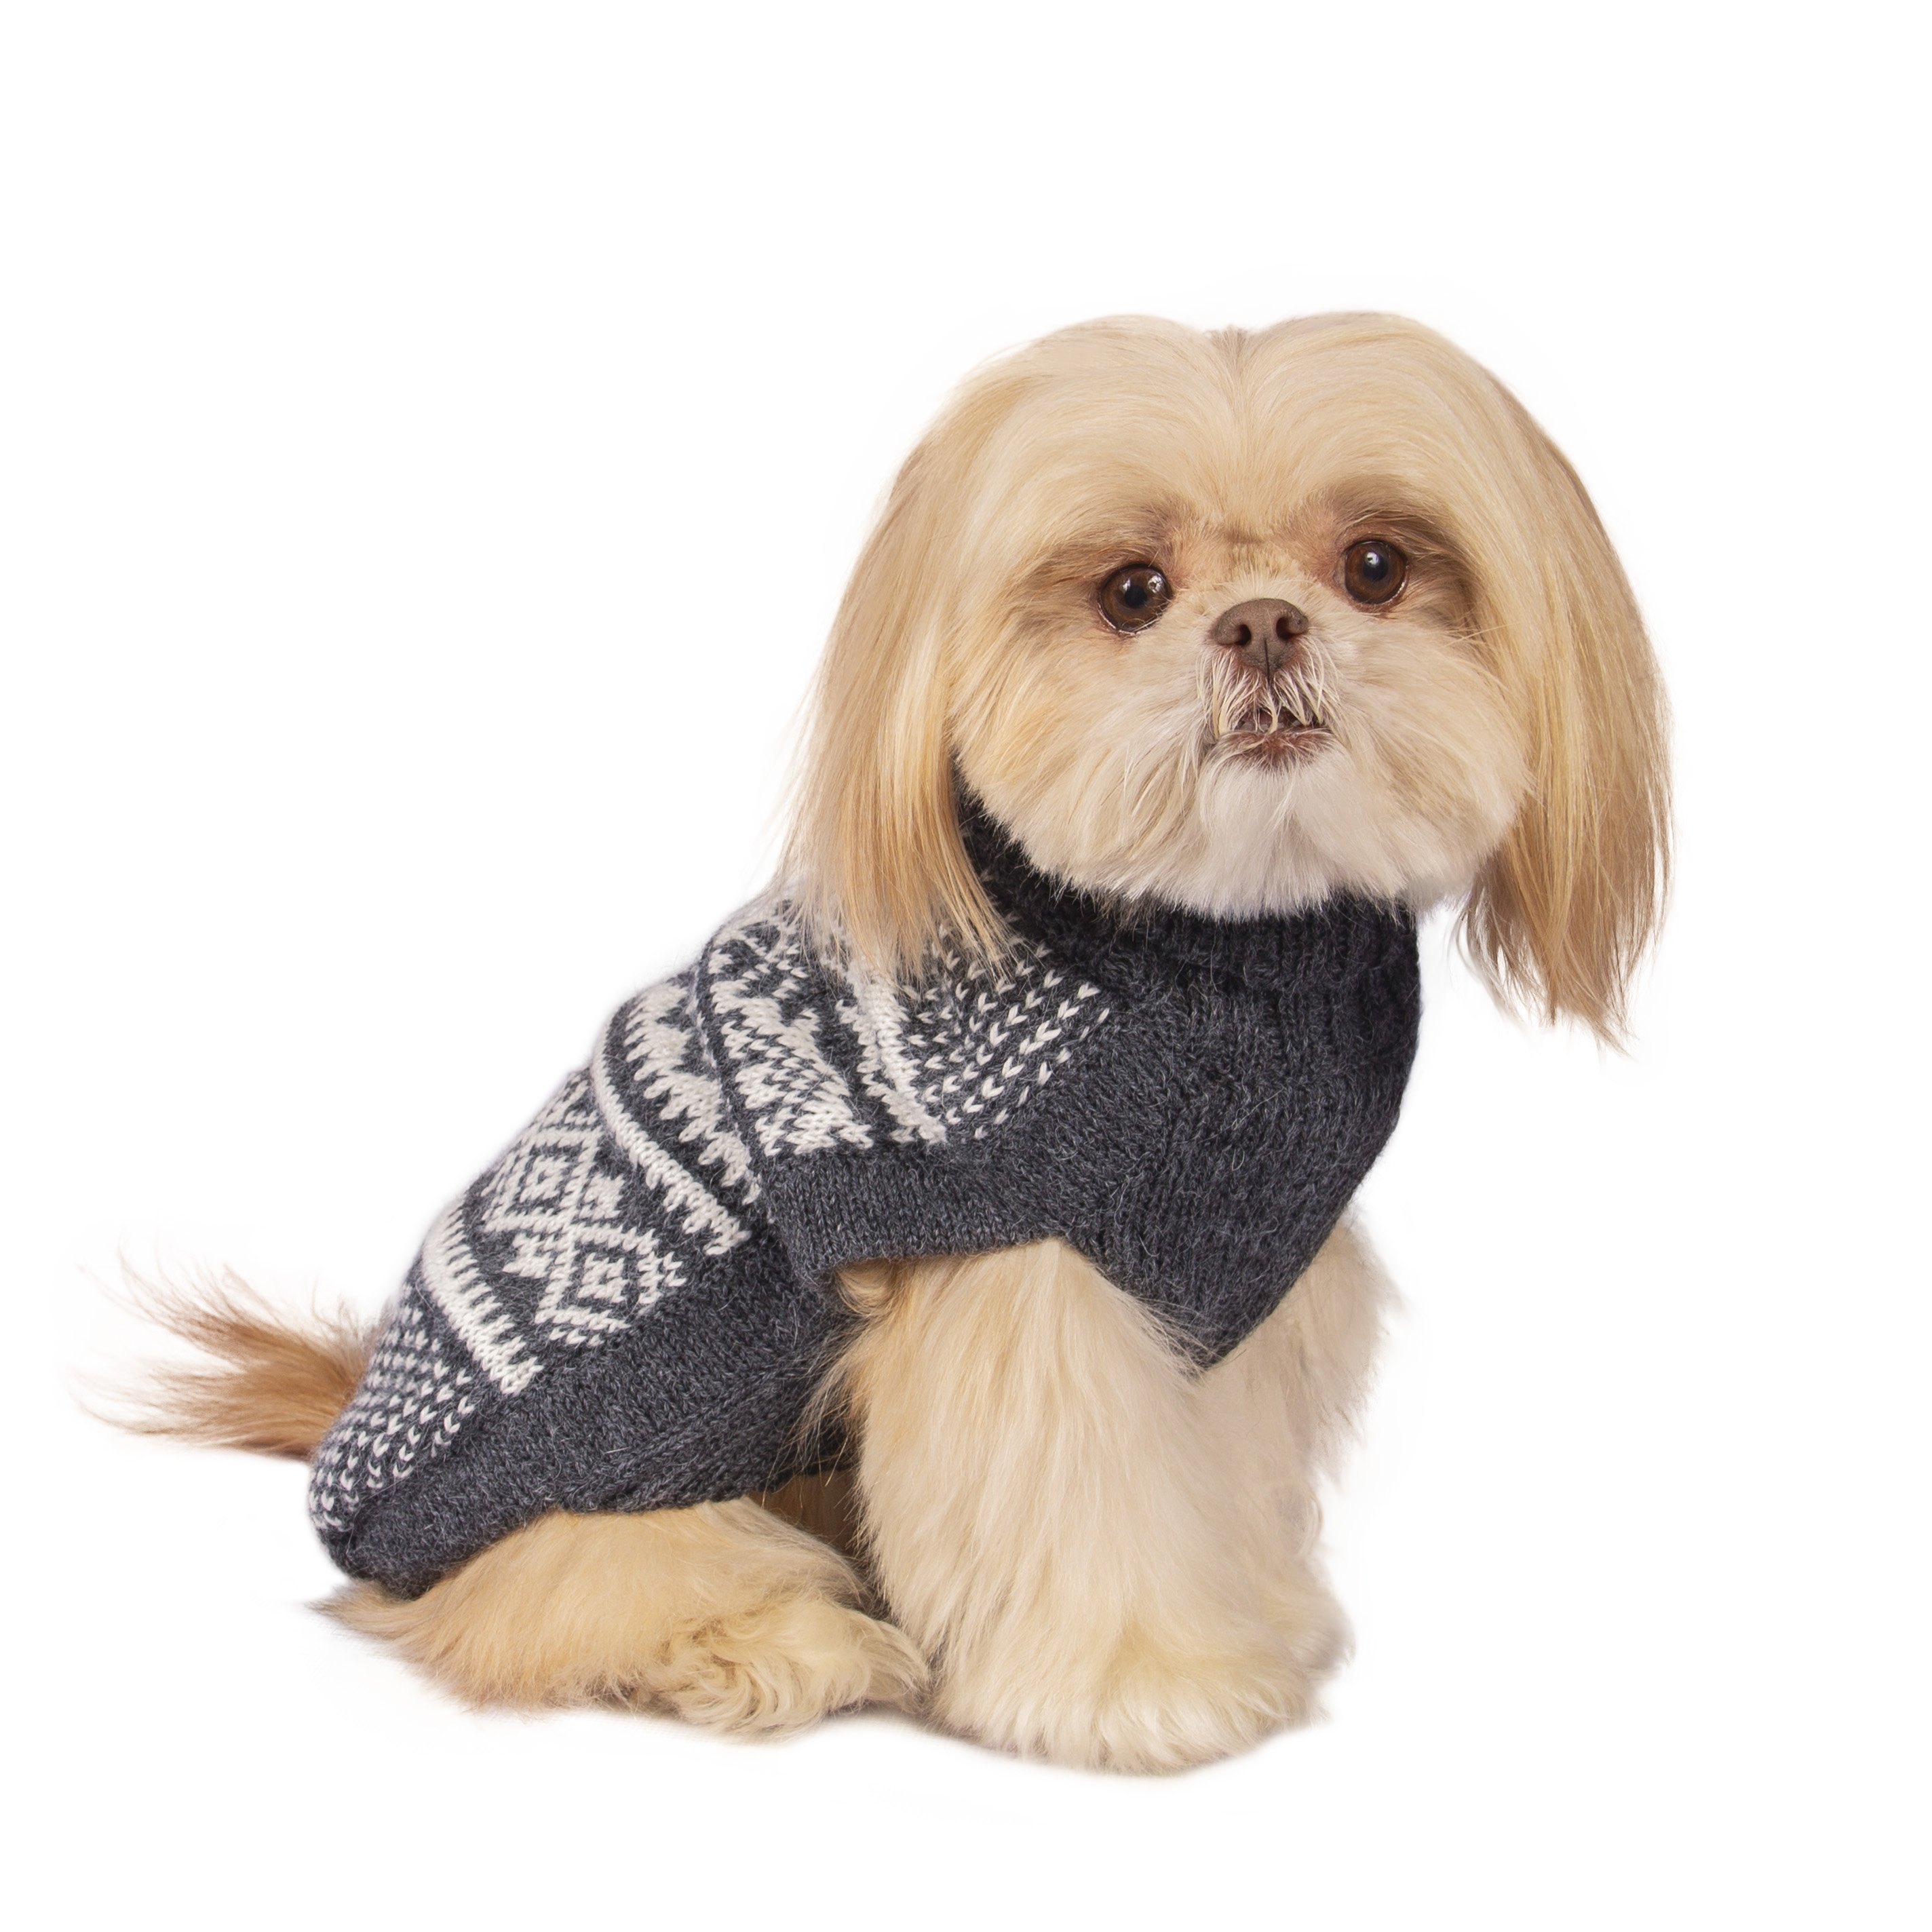 Mountain Grey alpaca dog sweater